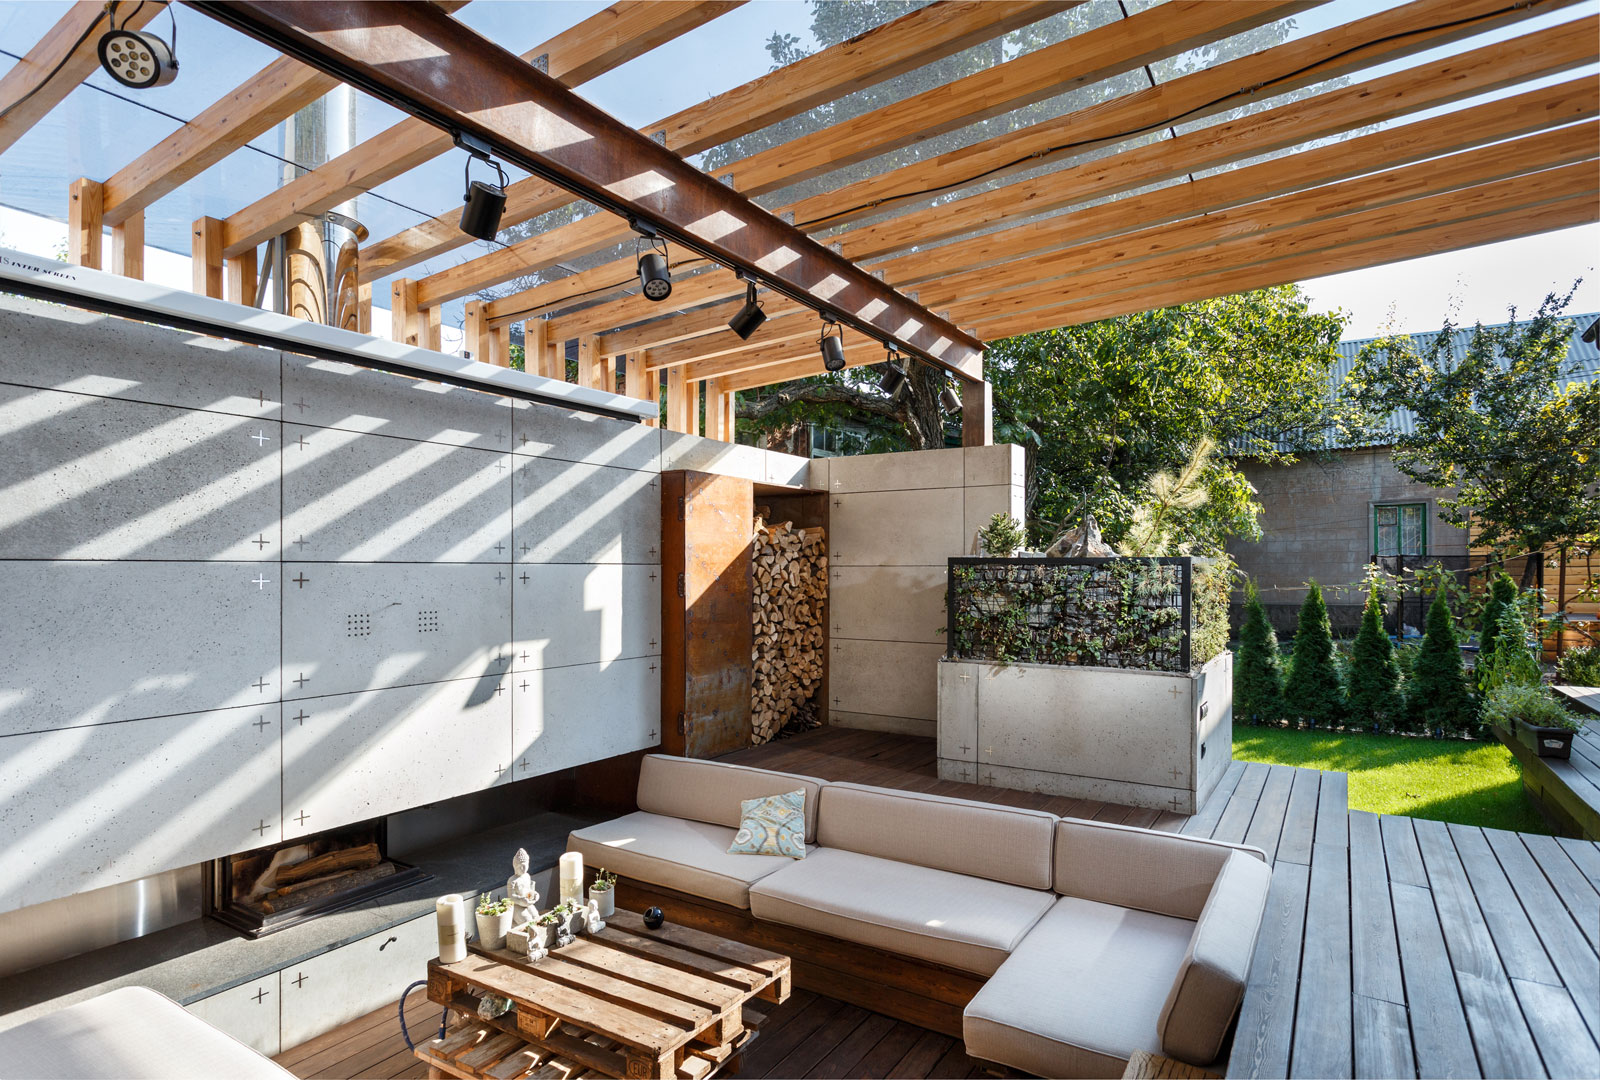 Contemporary Compact Courtyard of Lounge Zone by SVOYA studio-16